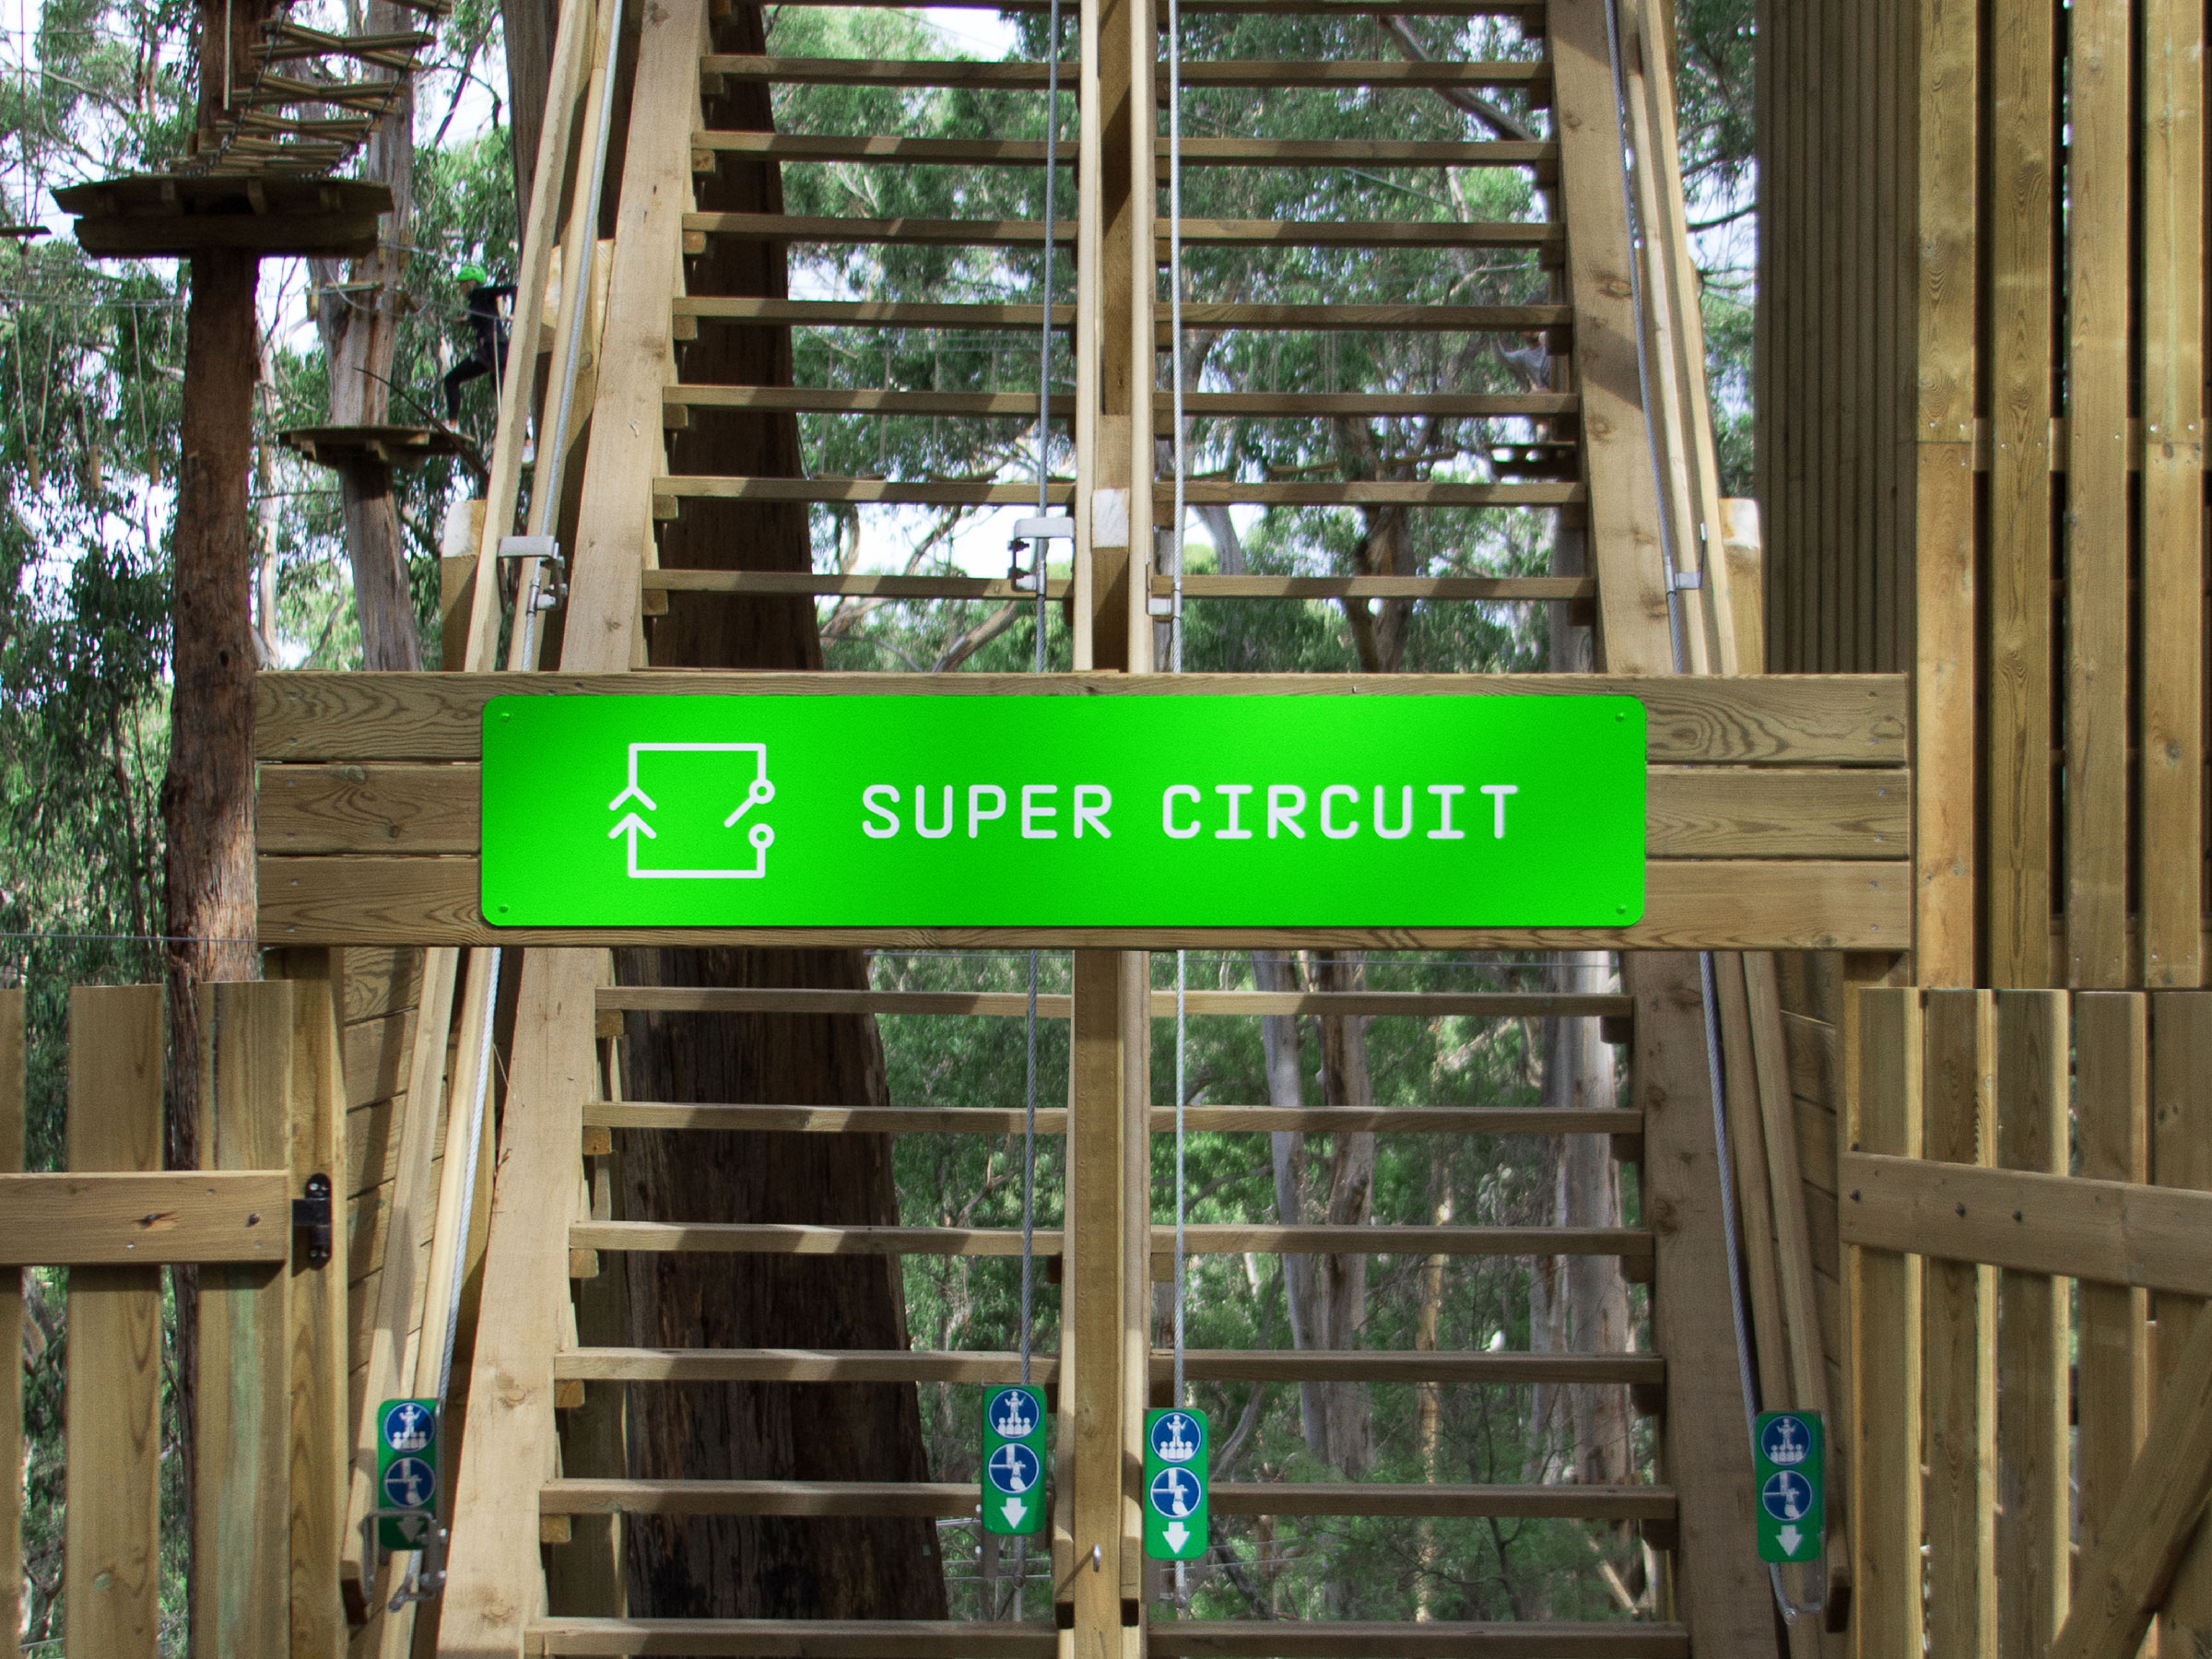 Live Wire Park Super Circuit Center Tracer Self Titled Brand Identity Signage Rh Selftitled Com Au Board Parallel